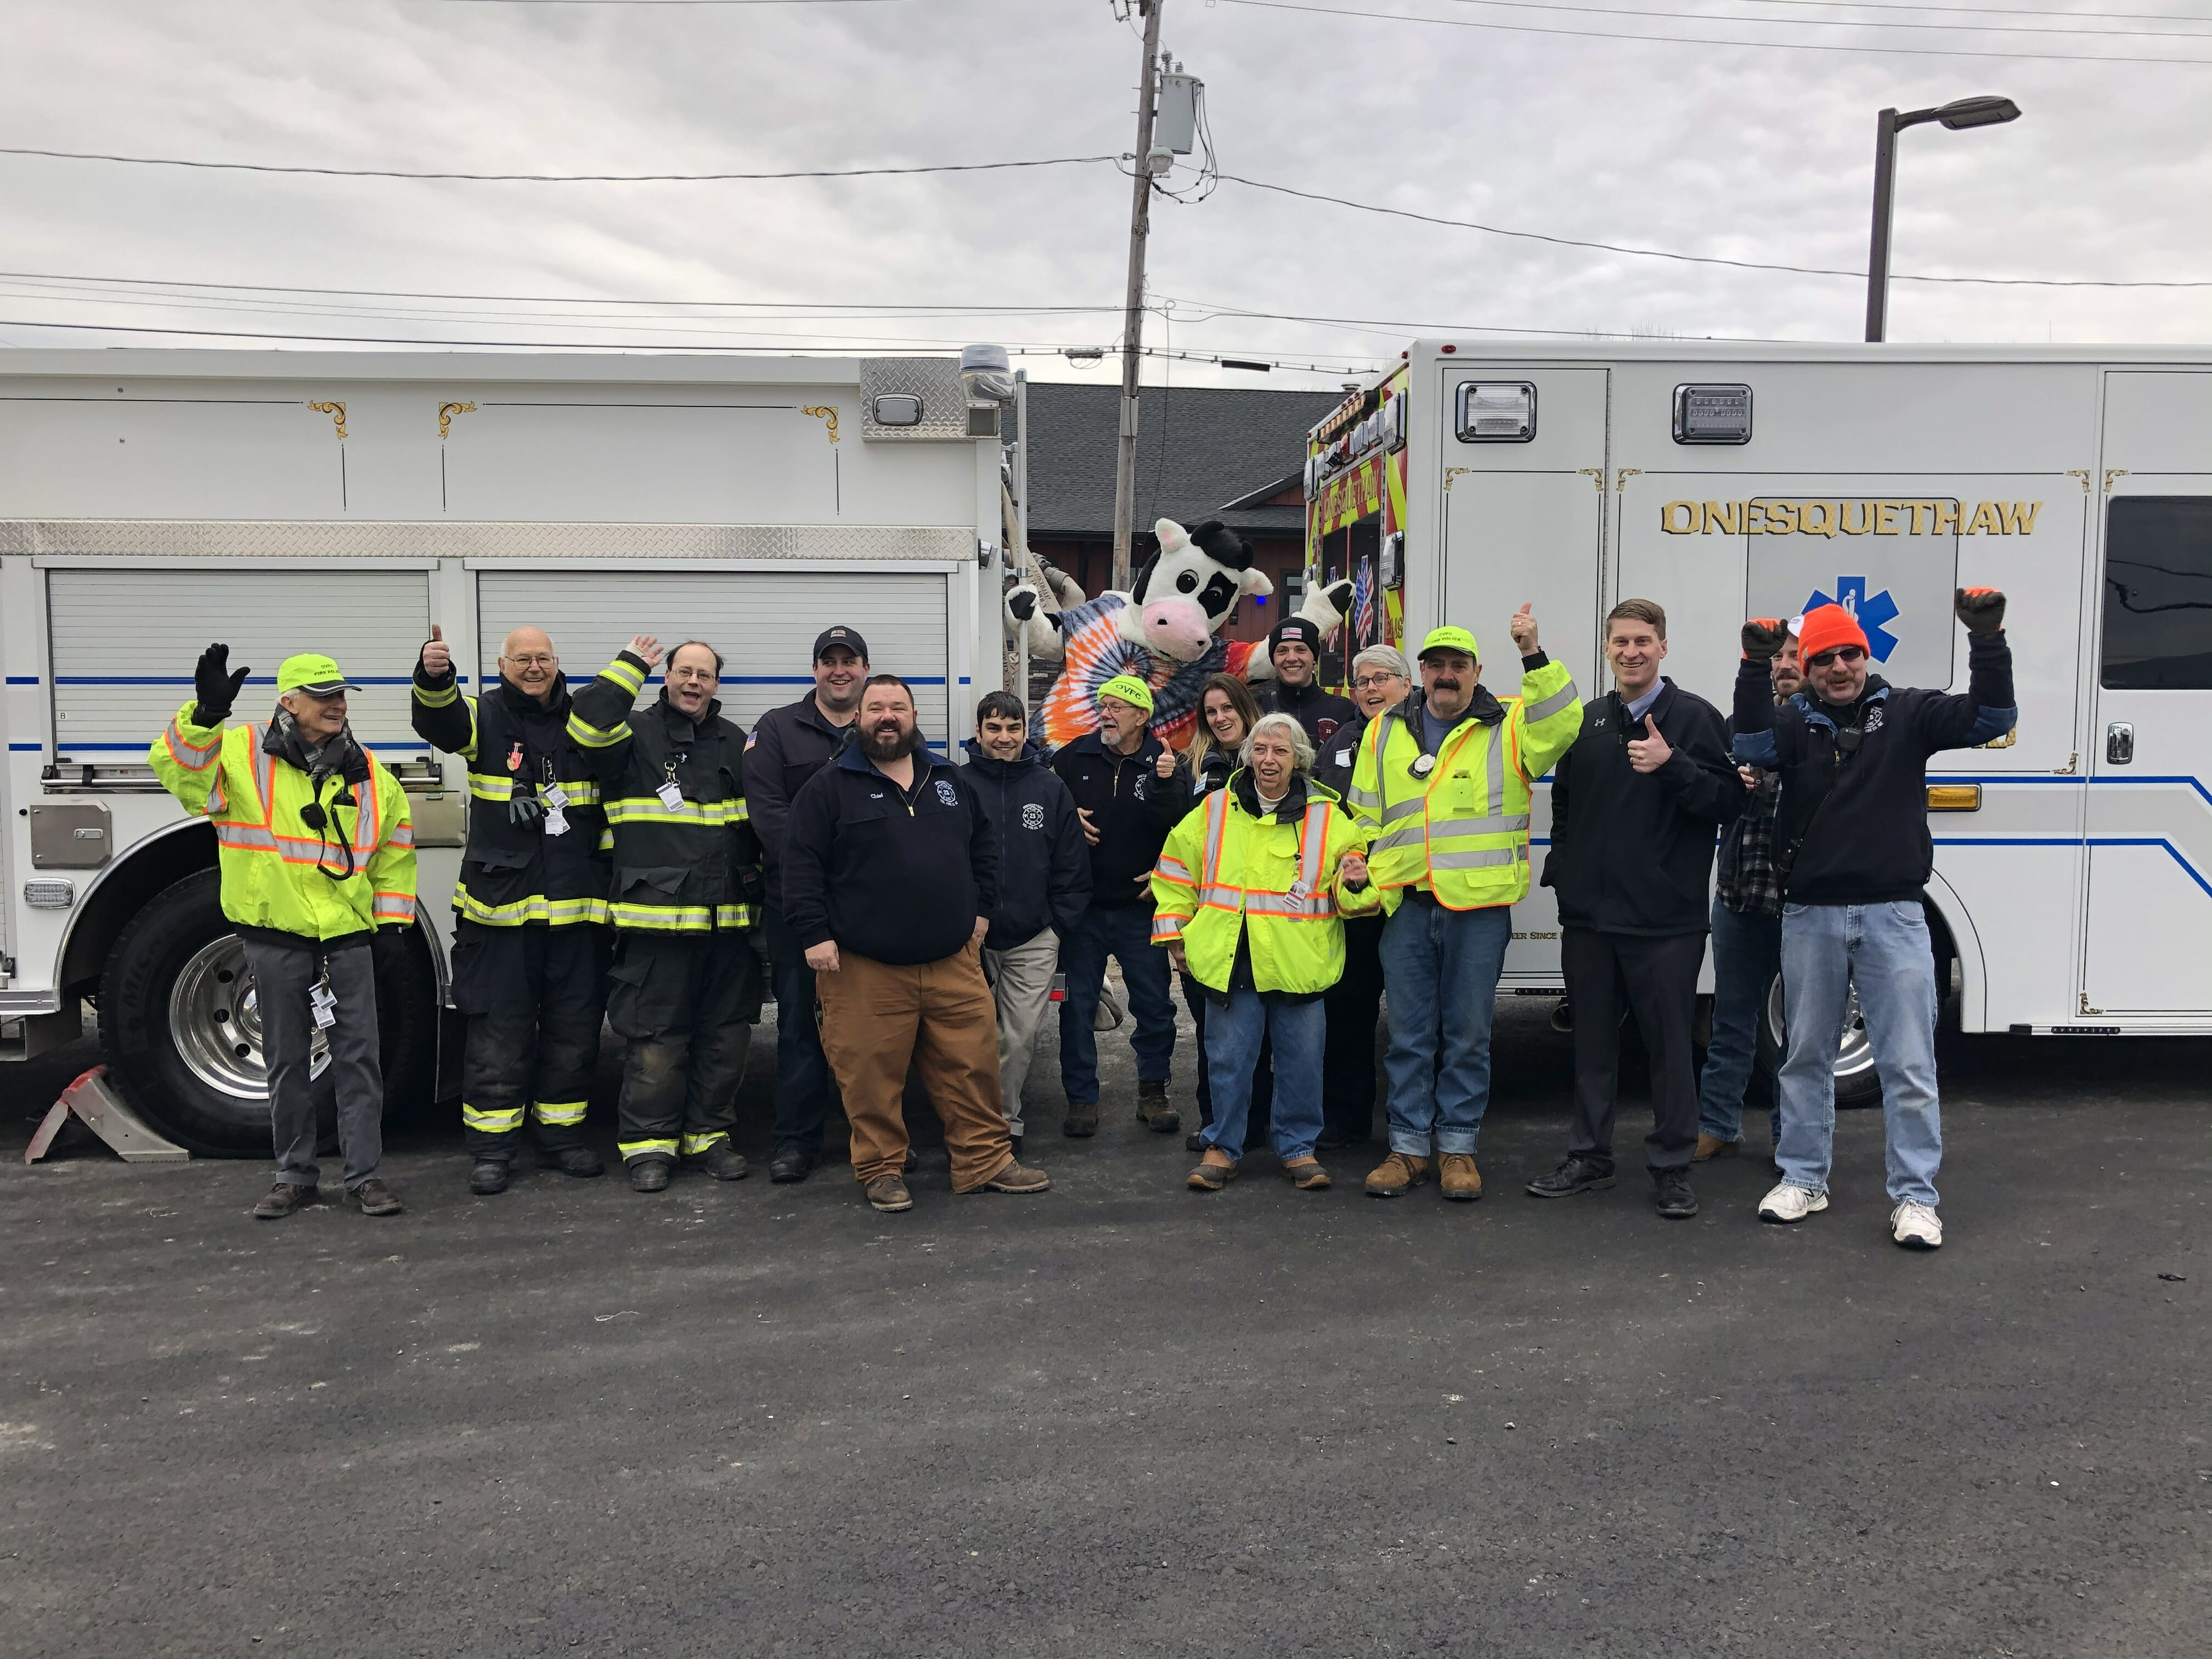 Group shot of the fire fighter crew with flavor the cow and two trucks